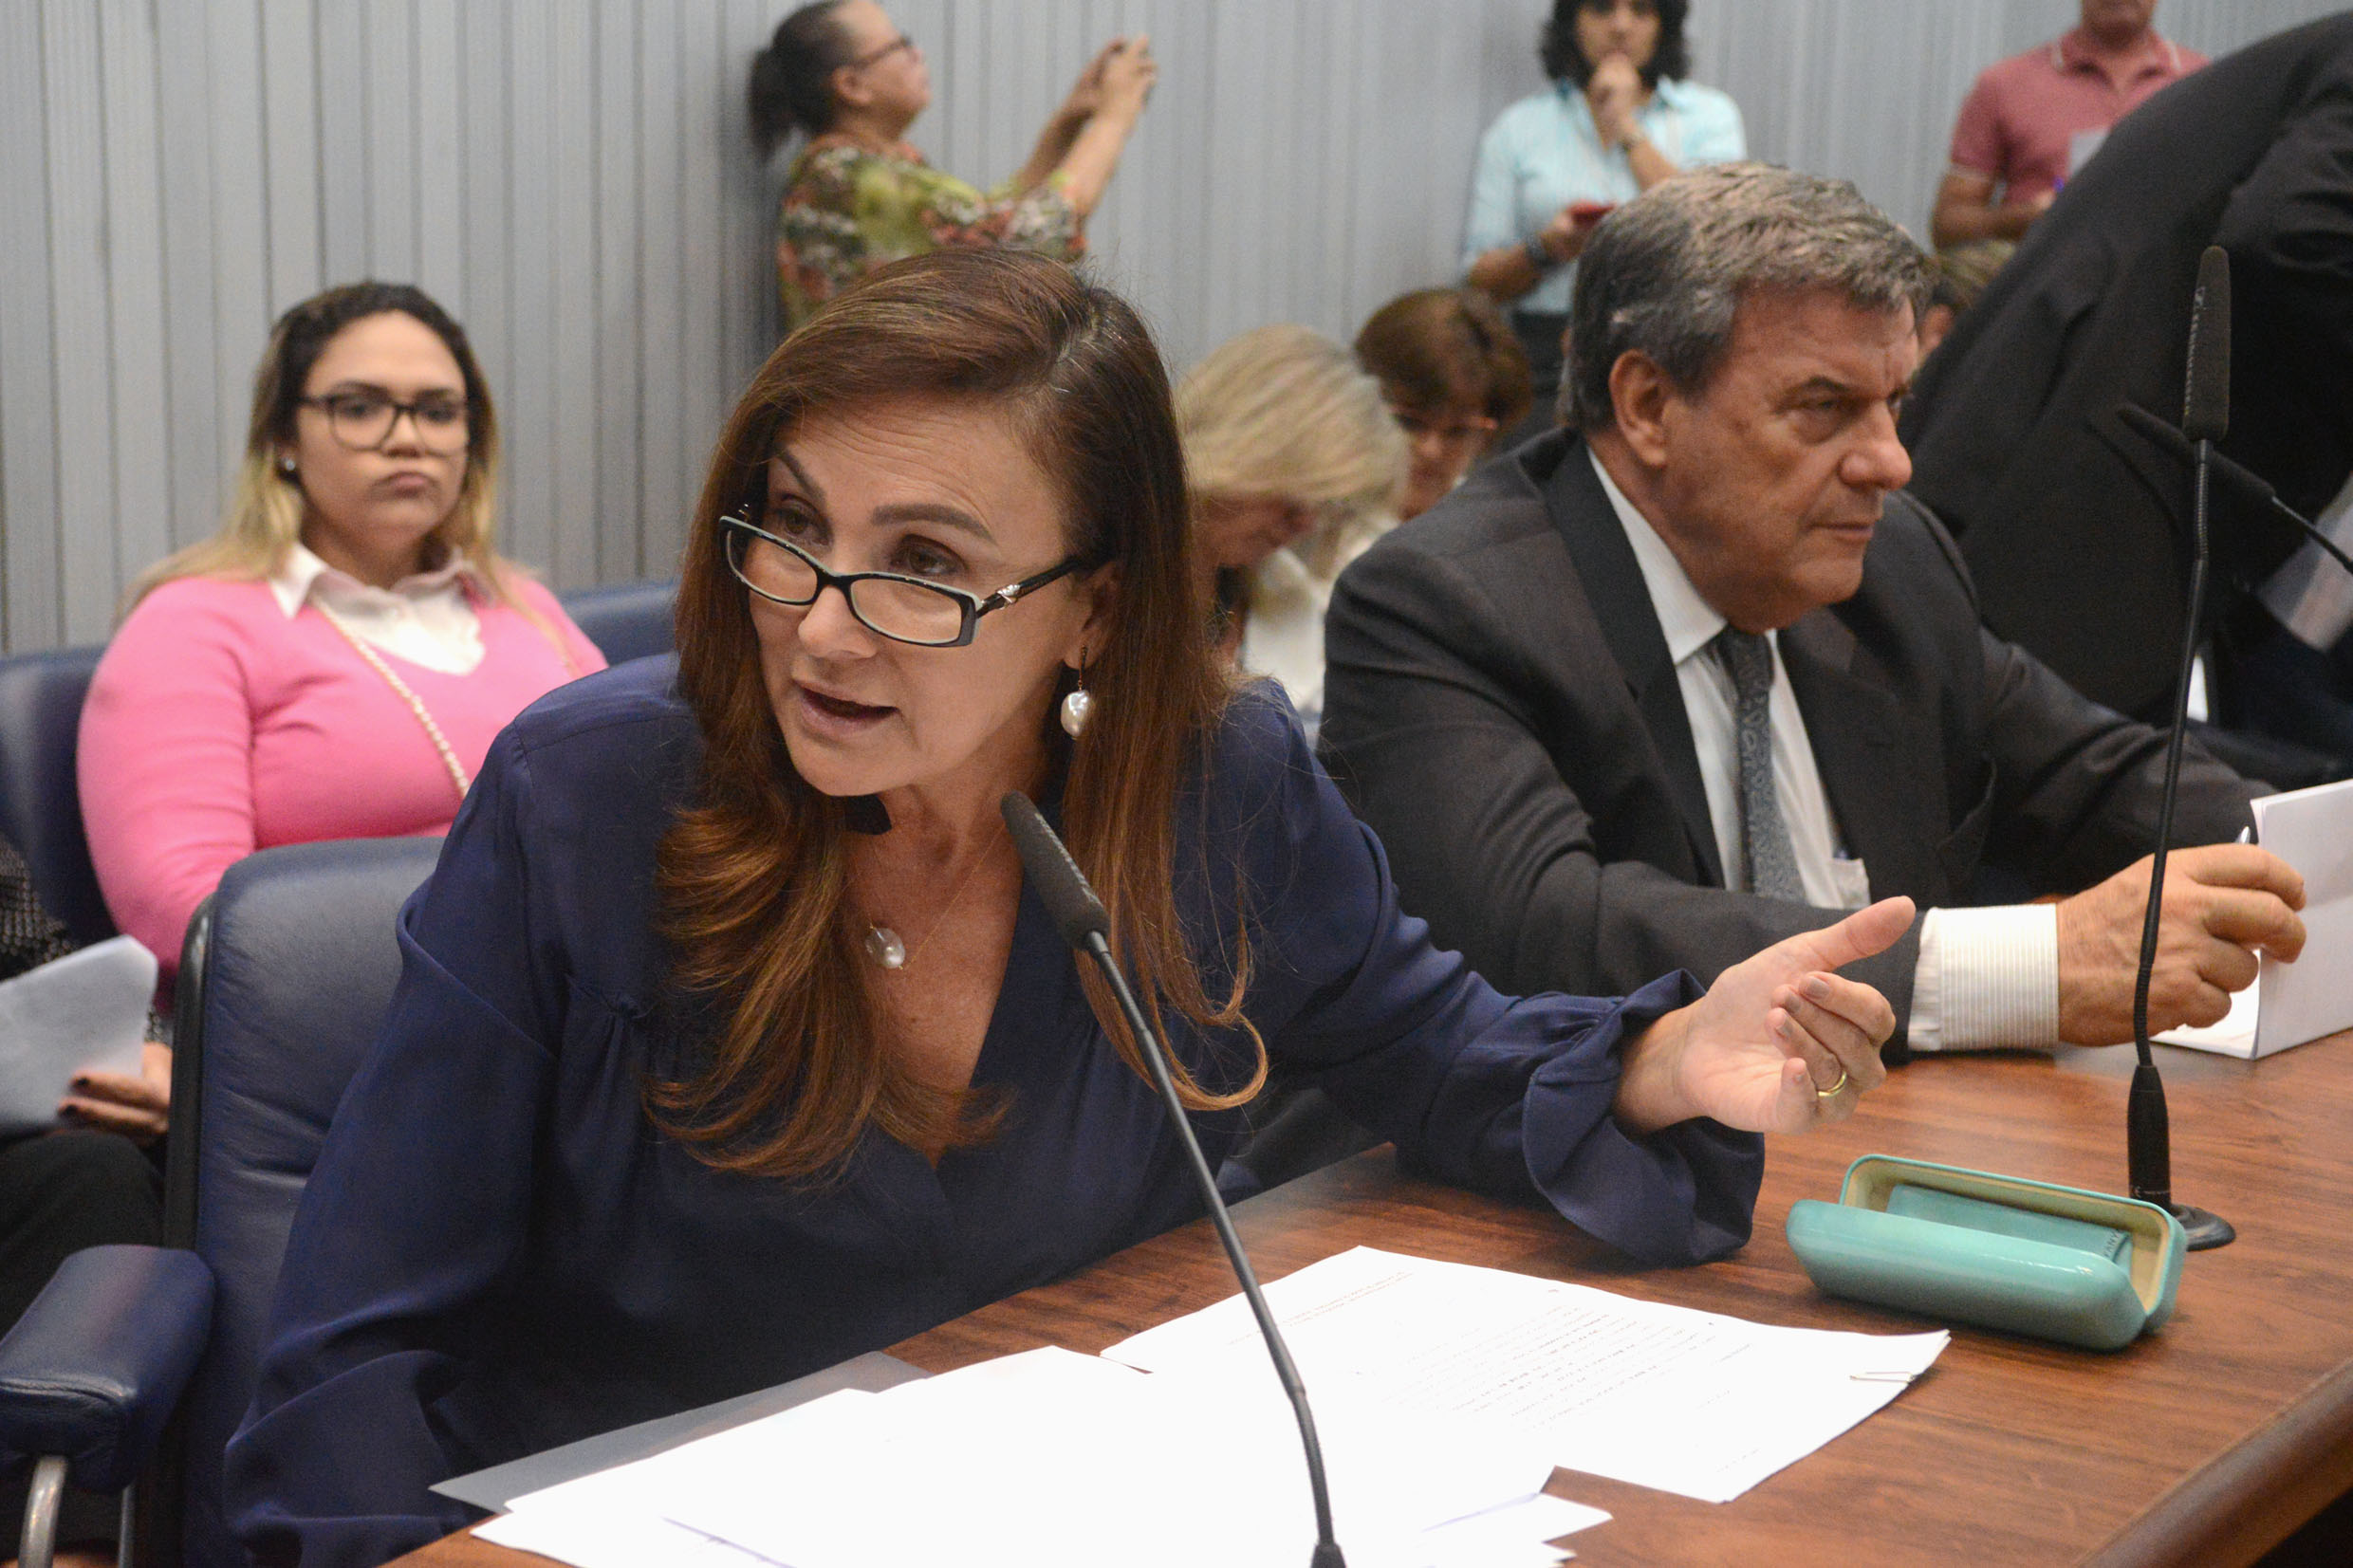 Parlamentares na comissão <a style='float:right' href='https://www3.al.sp.gov.br/repositorio/noticia/N-02-2019/fg229841.jpg' target=_blank><img src='/_img/material-file-download-white.png' width='14px' alt='Clique para baixar a imagem'></a>